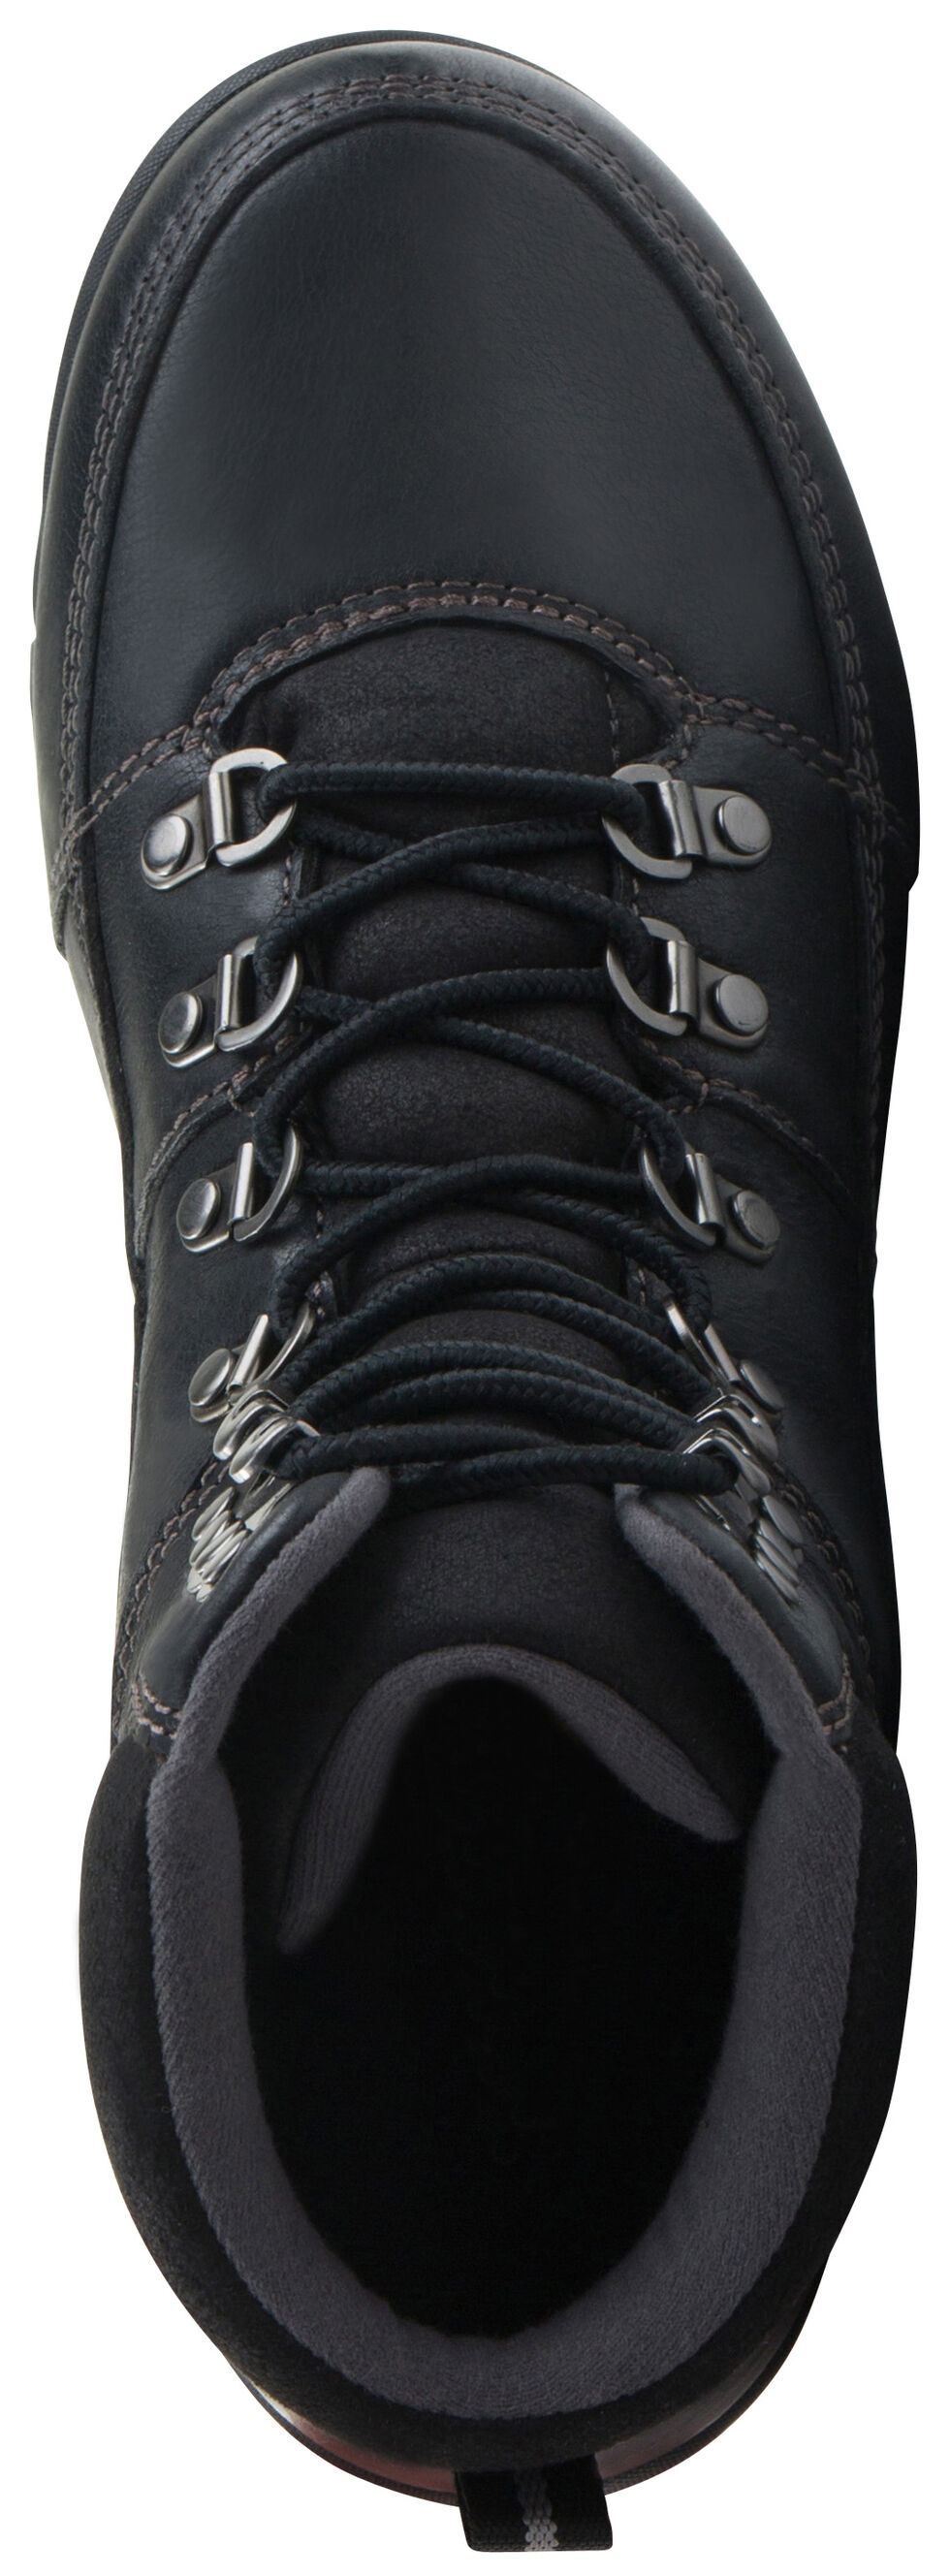 Eastland Men's Black Chester Alpine Hiking Boots , Black, hi-res